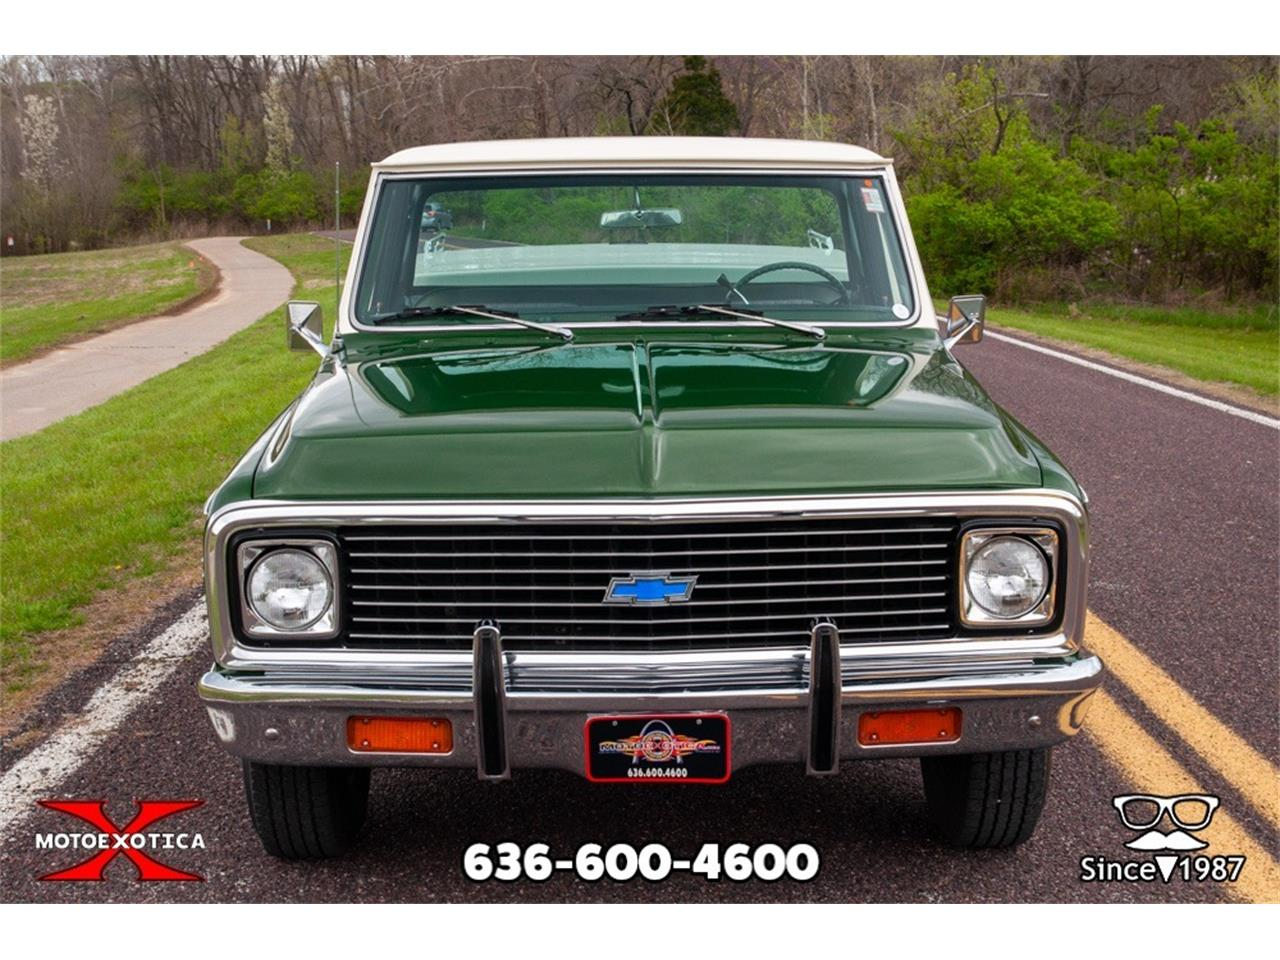 Large Picture of 1971 Chevrolet C20 Fleetside located in St. Louis Missouri - $26,900.00 - NC3N